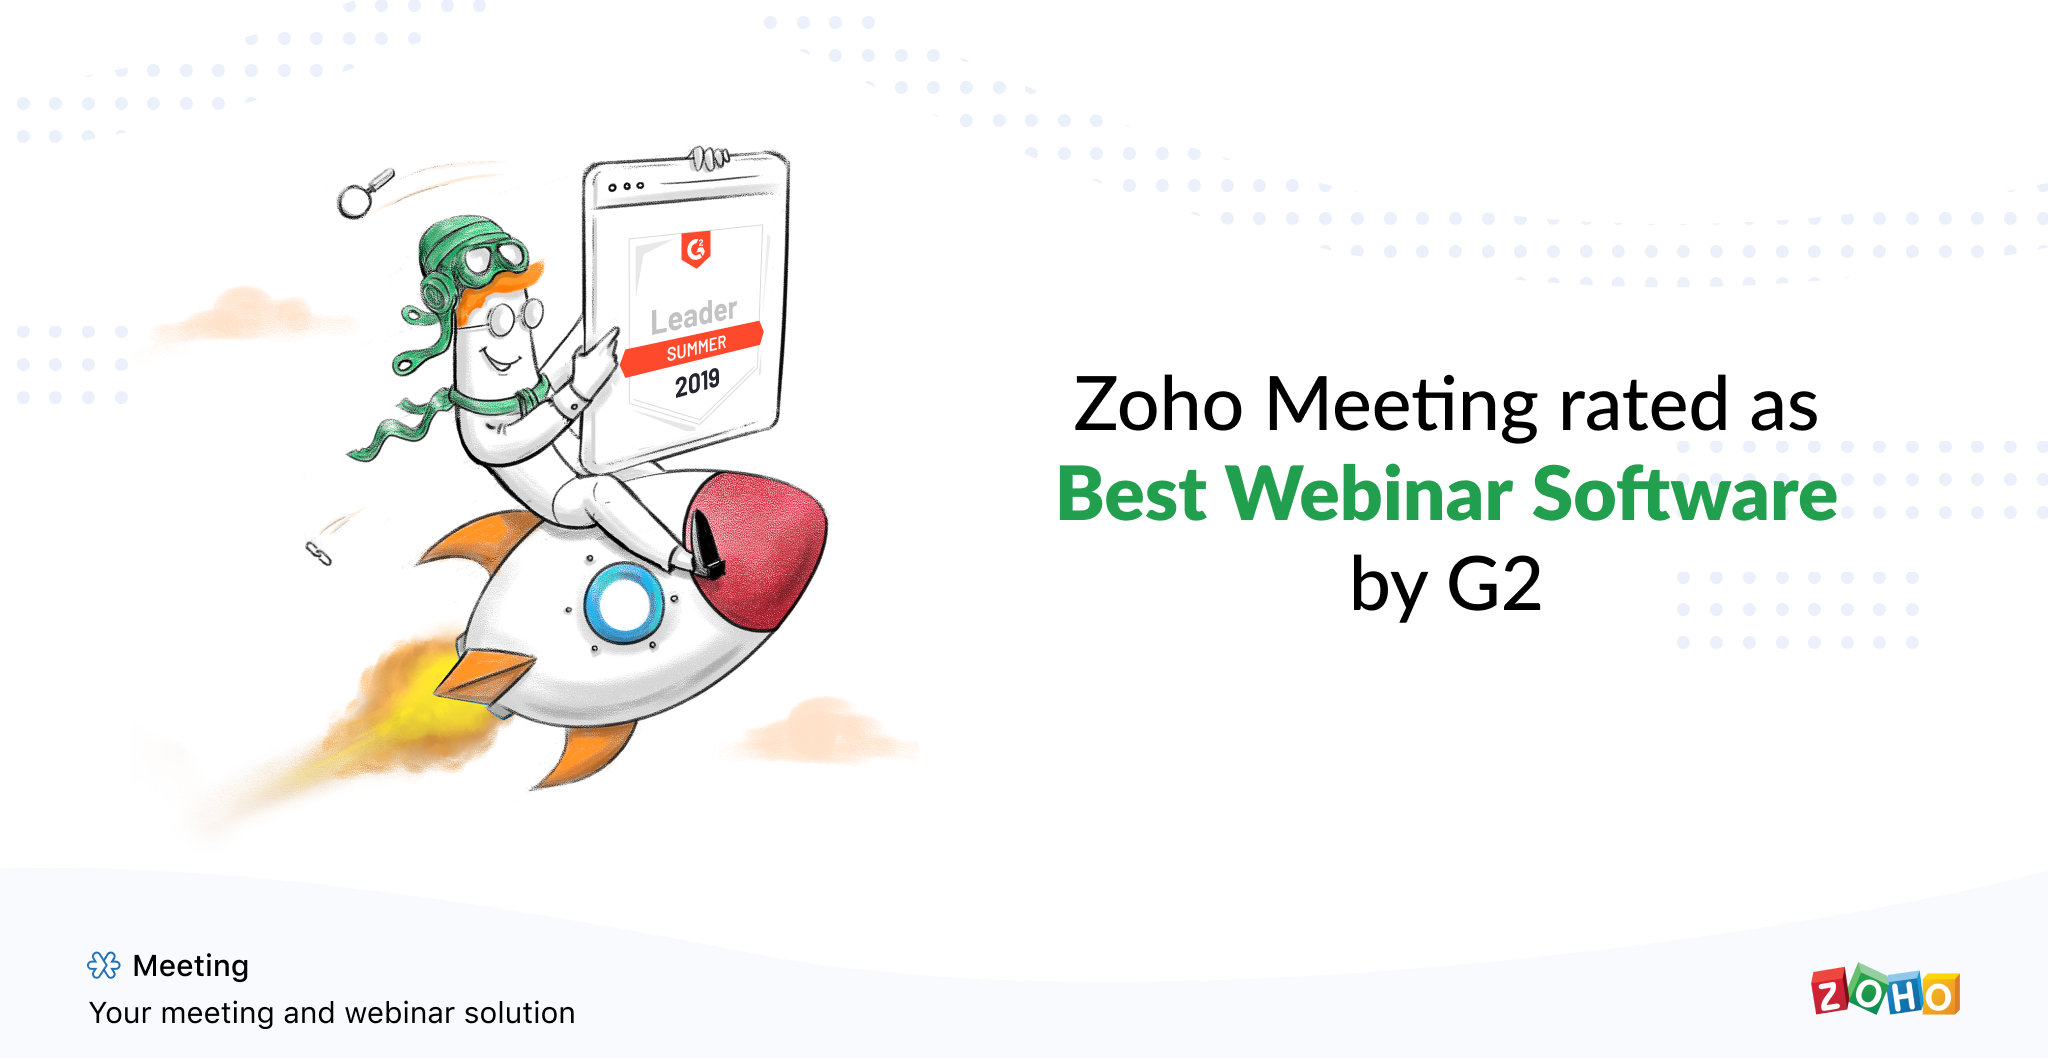 G2 names Zoho Meeting a 2019 Leader in Best Webinar Software